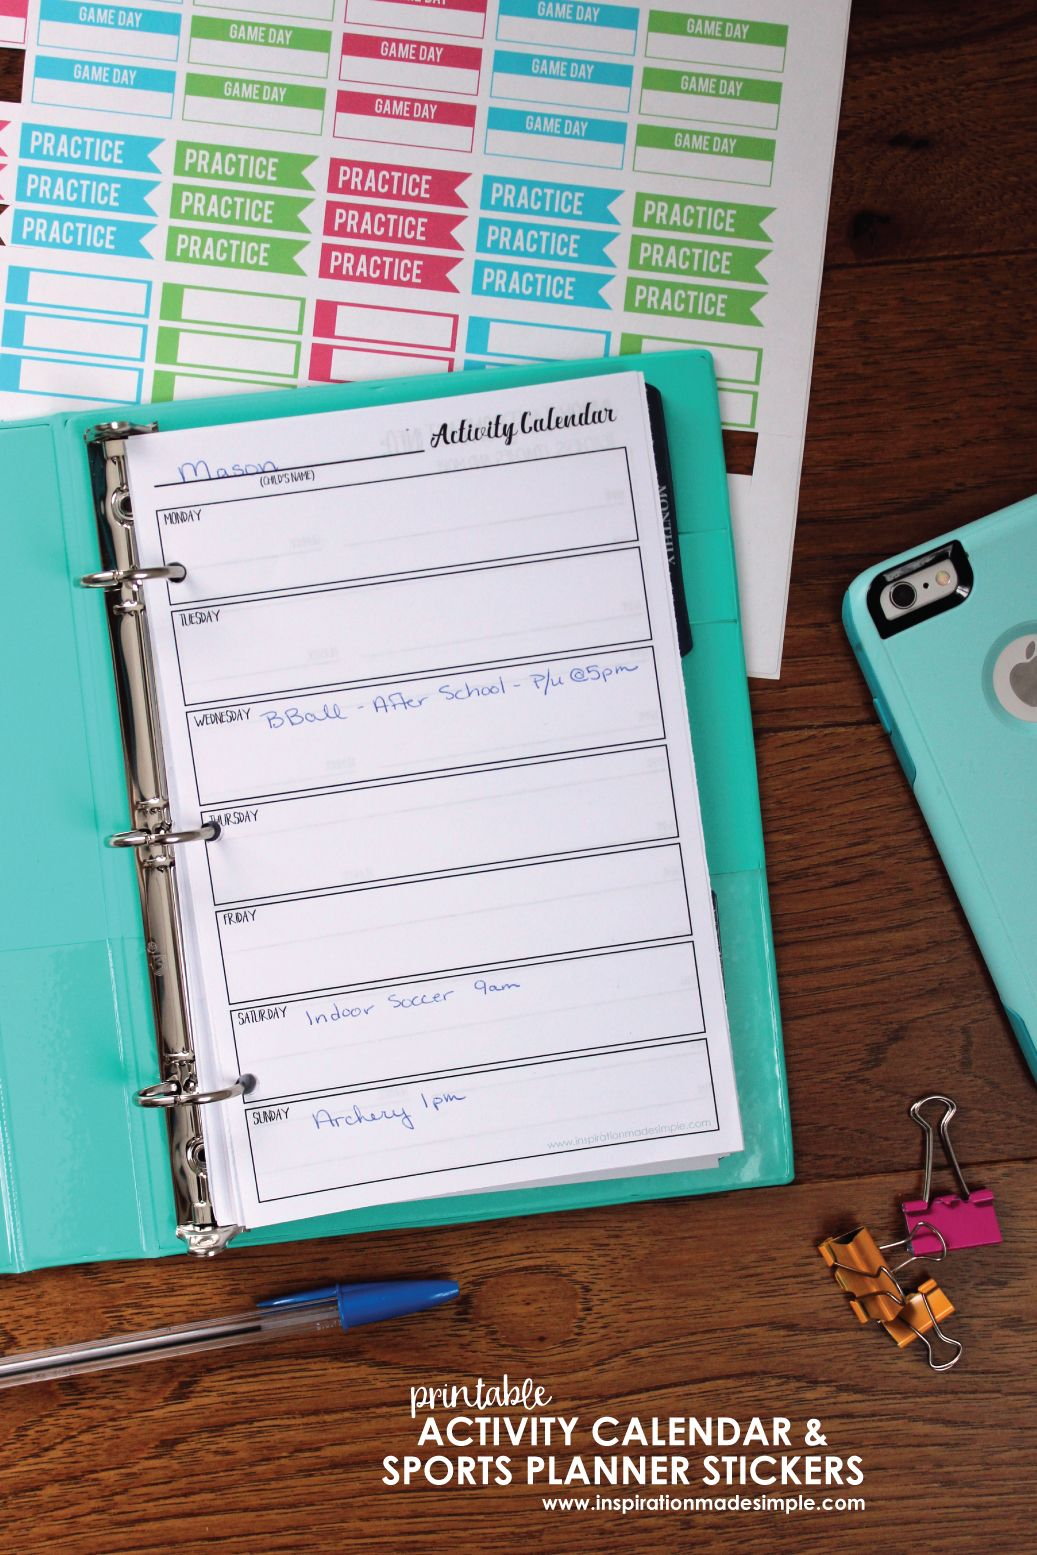 Kids Calendar With Activity Stickers : Youth sports planner stickers planners notebooks journals